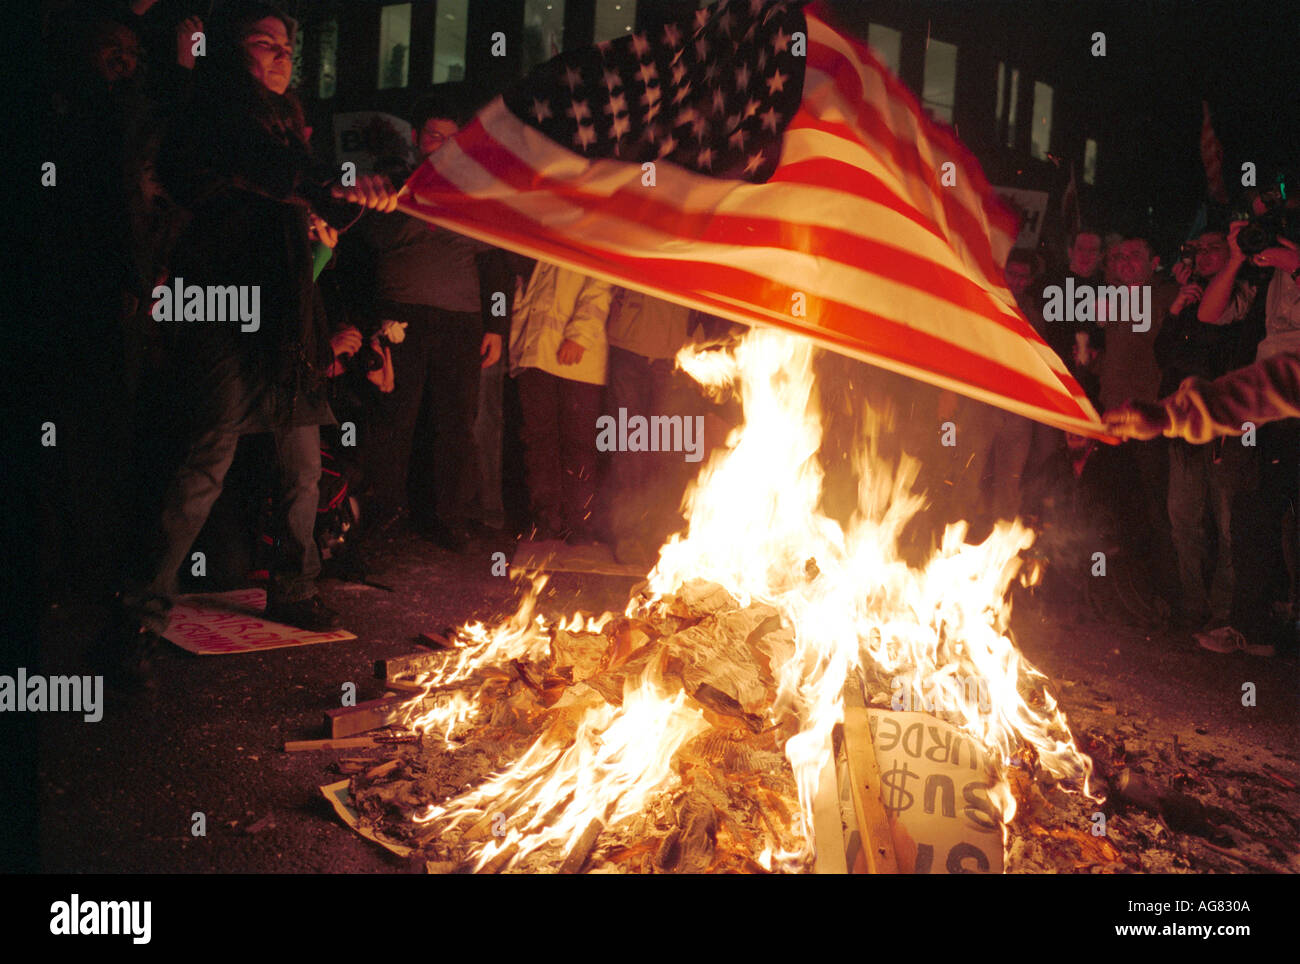 burning the american flag Reader approved how to dispose of a damaged american flag two methods: respectfully burning the flag choosing alternate disposal methods community q&a.